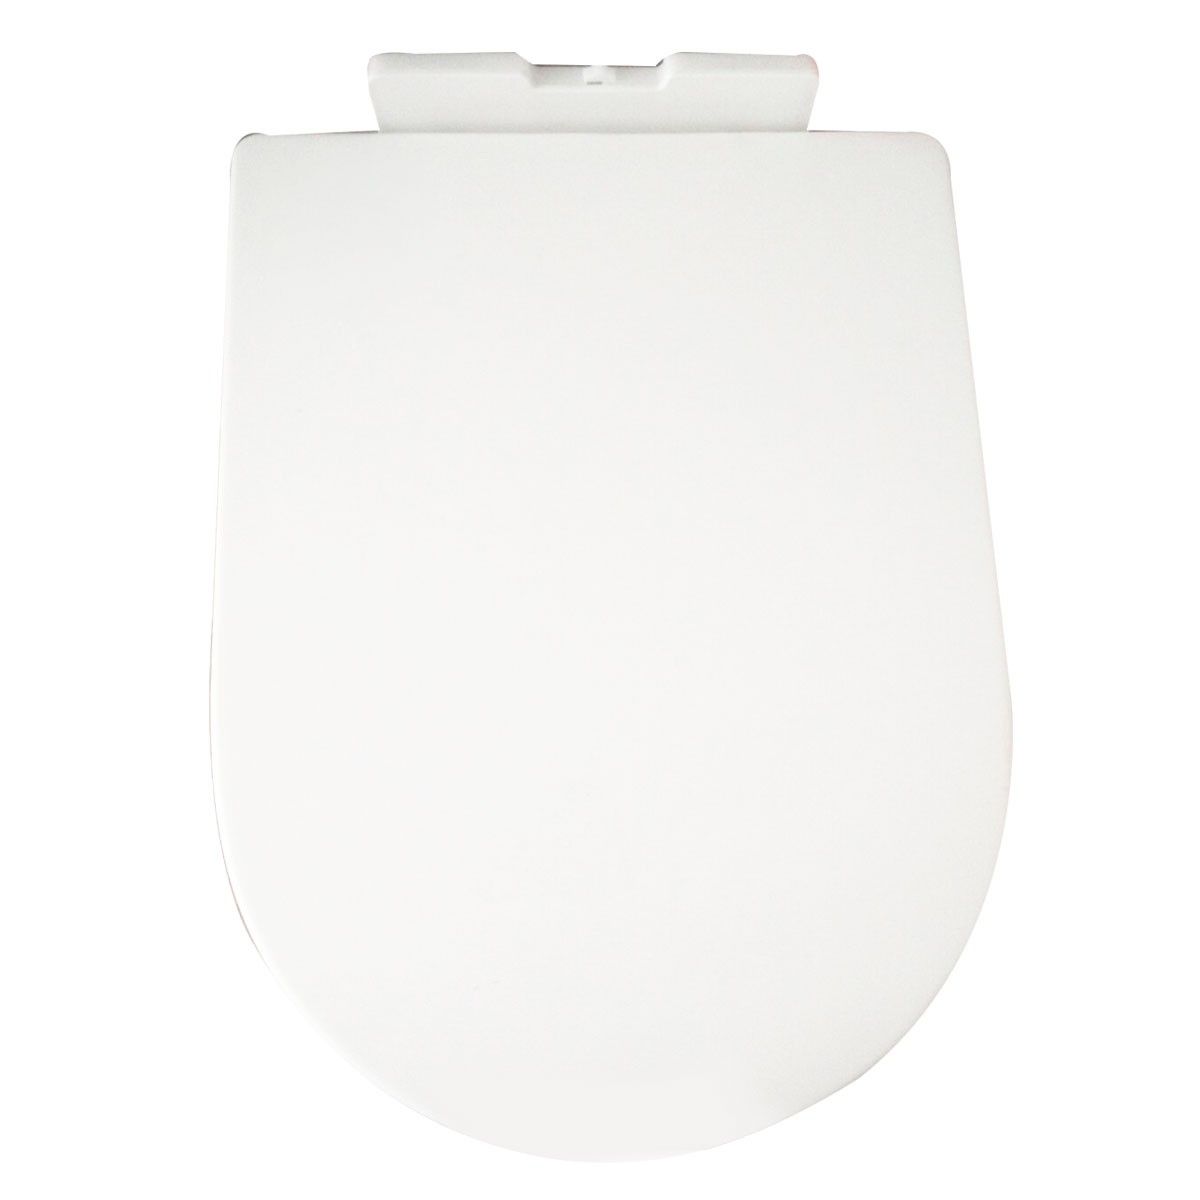 PP White Round-front Soft Close Toilet Seat with Cover (DK-CL-090)